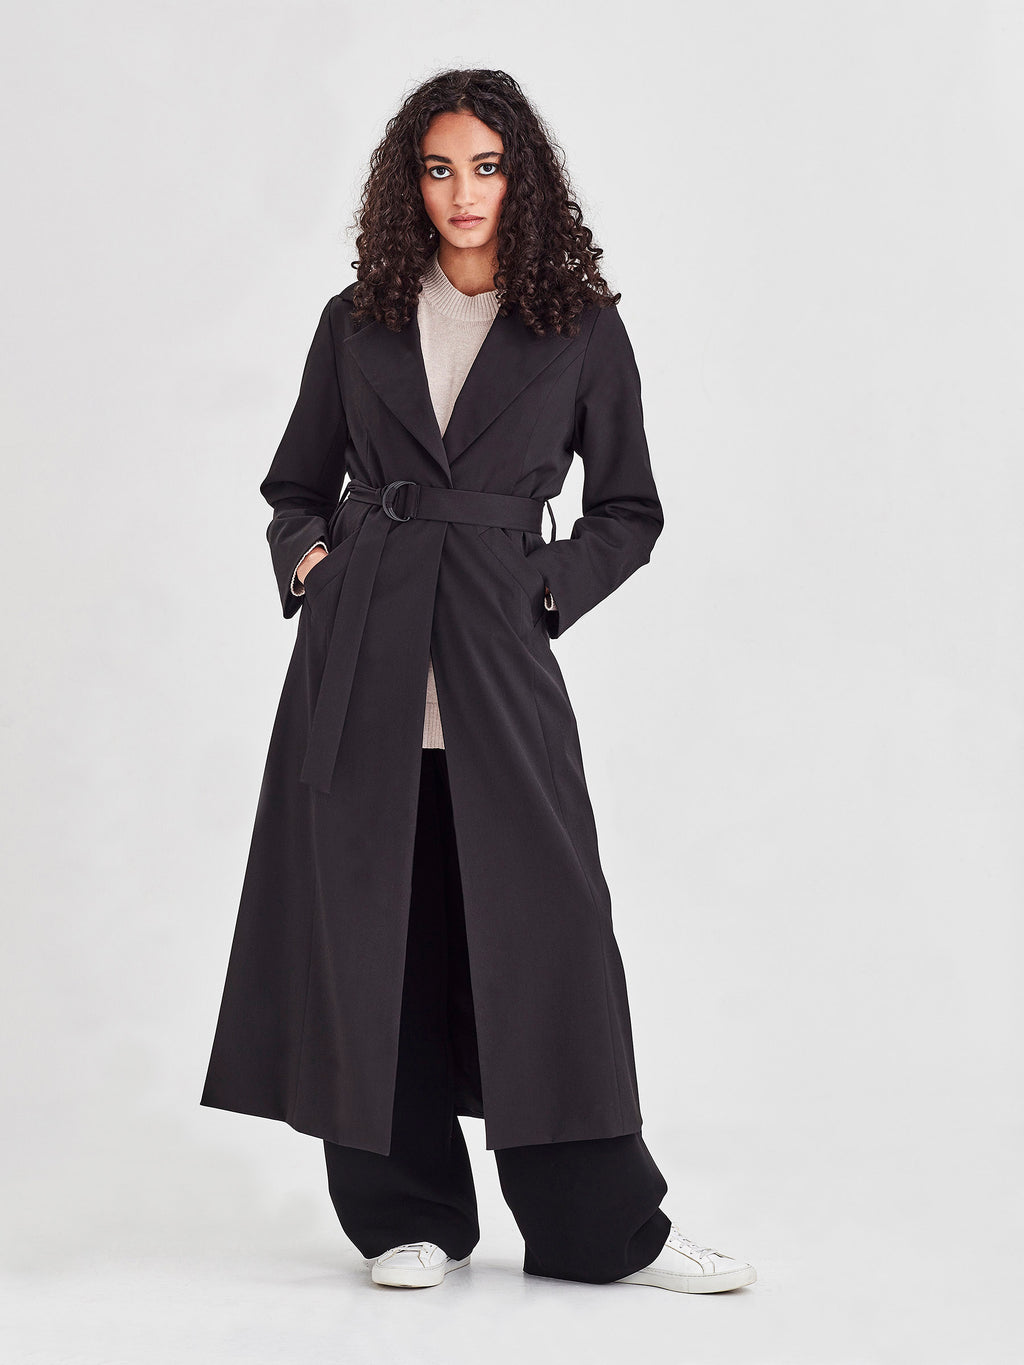 Del Mar Trench (Heavy Wool Suiting) Black